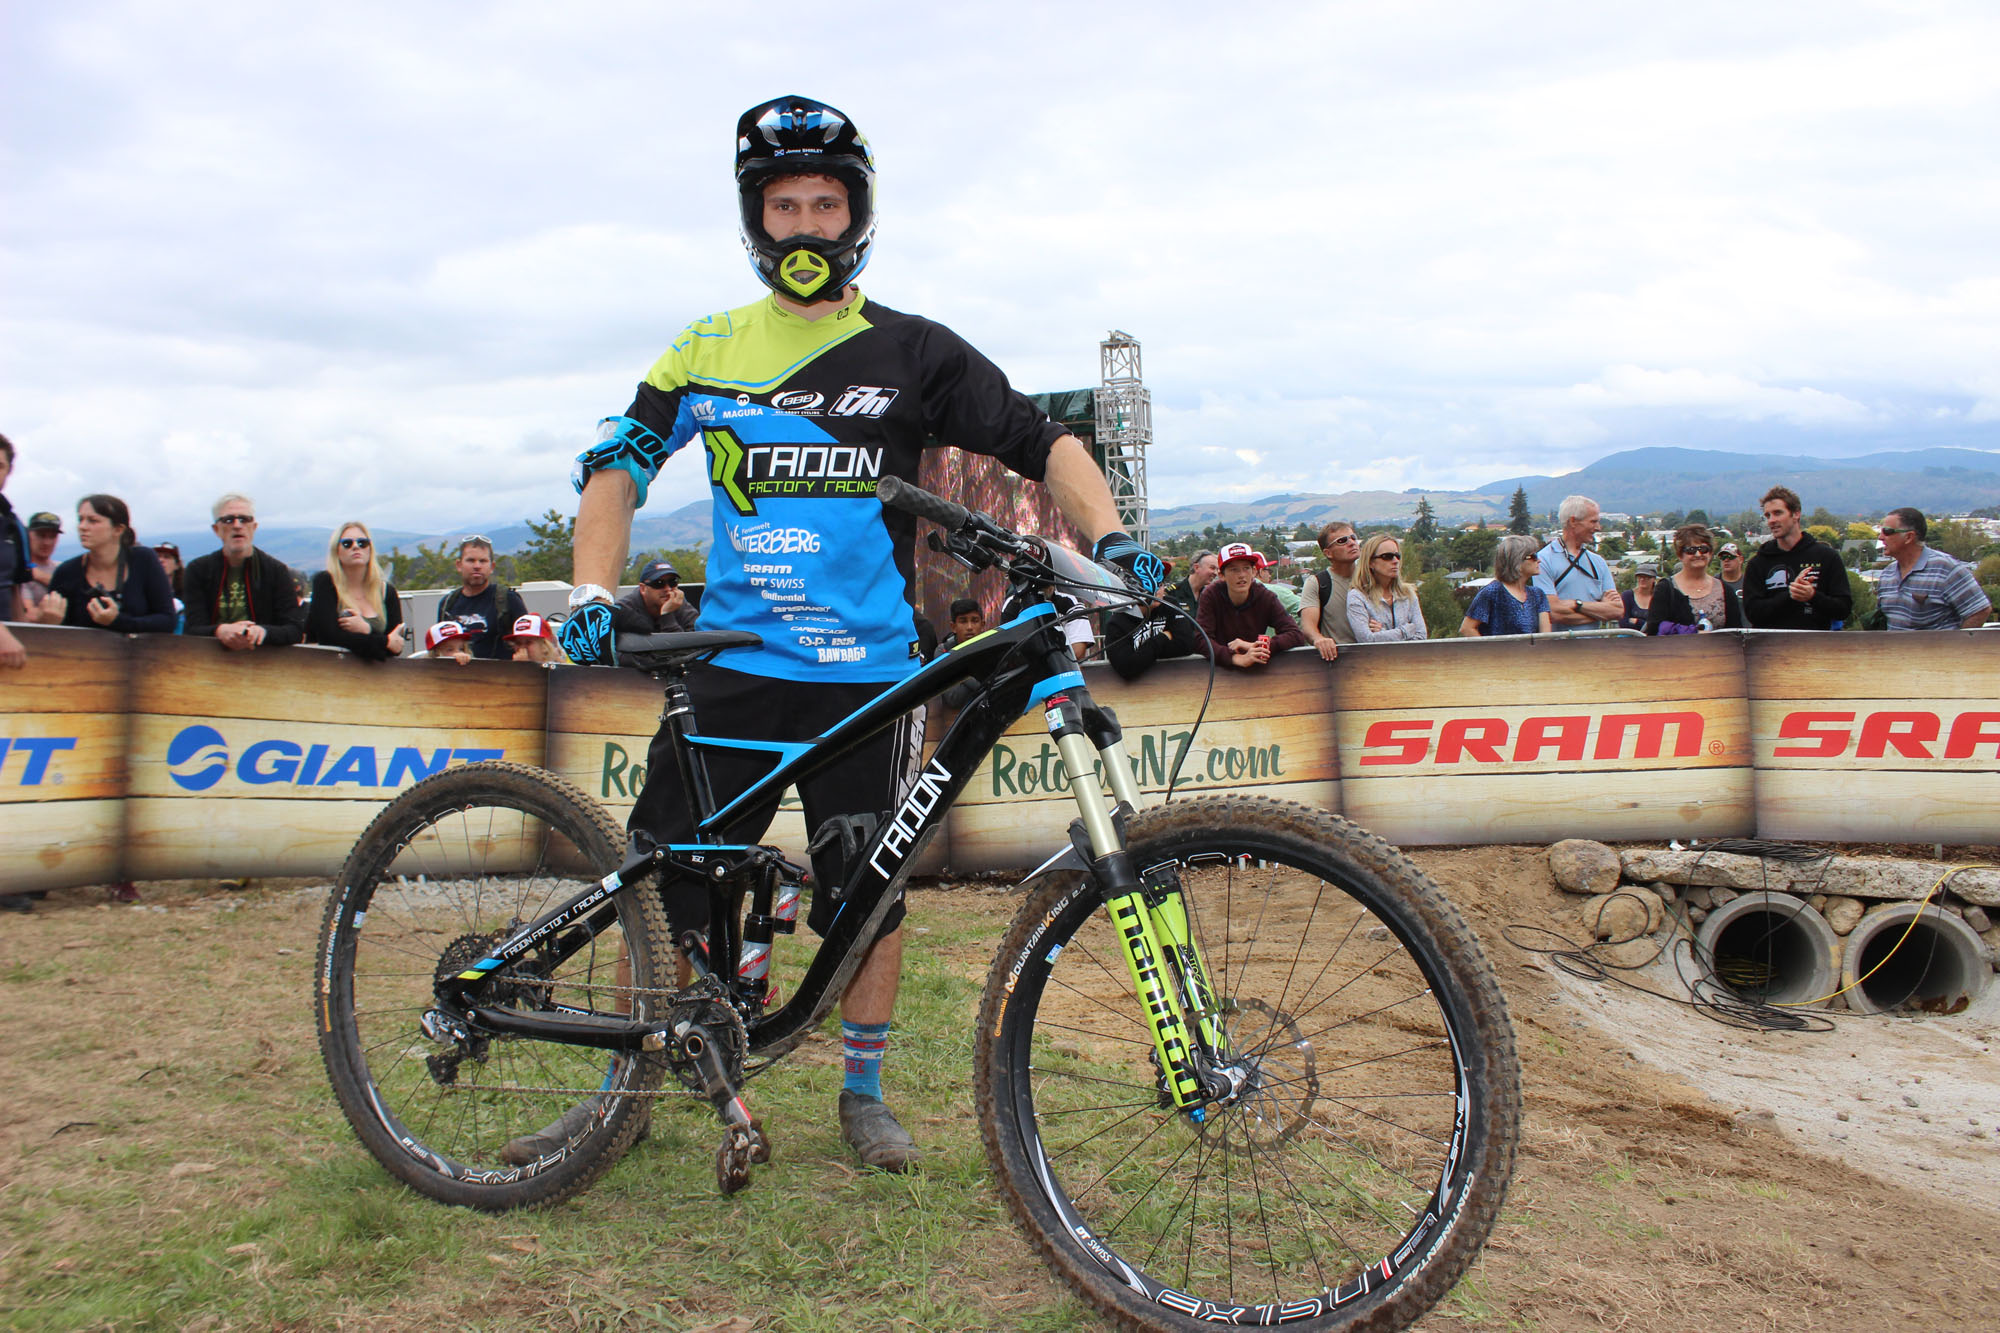 James Shirley vom Radon Factory Enduro Team © Julian Gerhardt